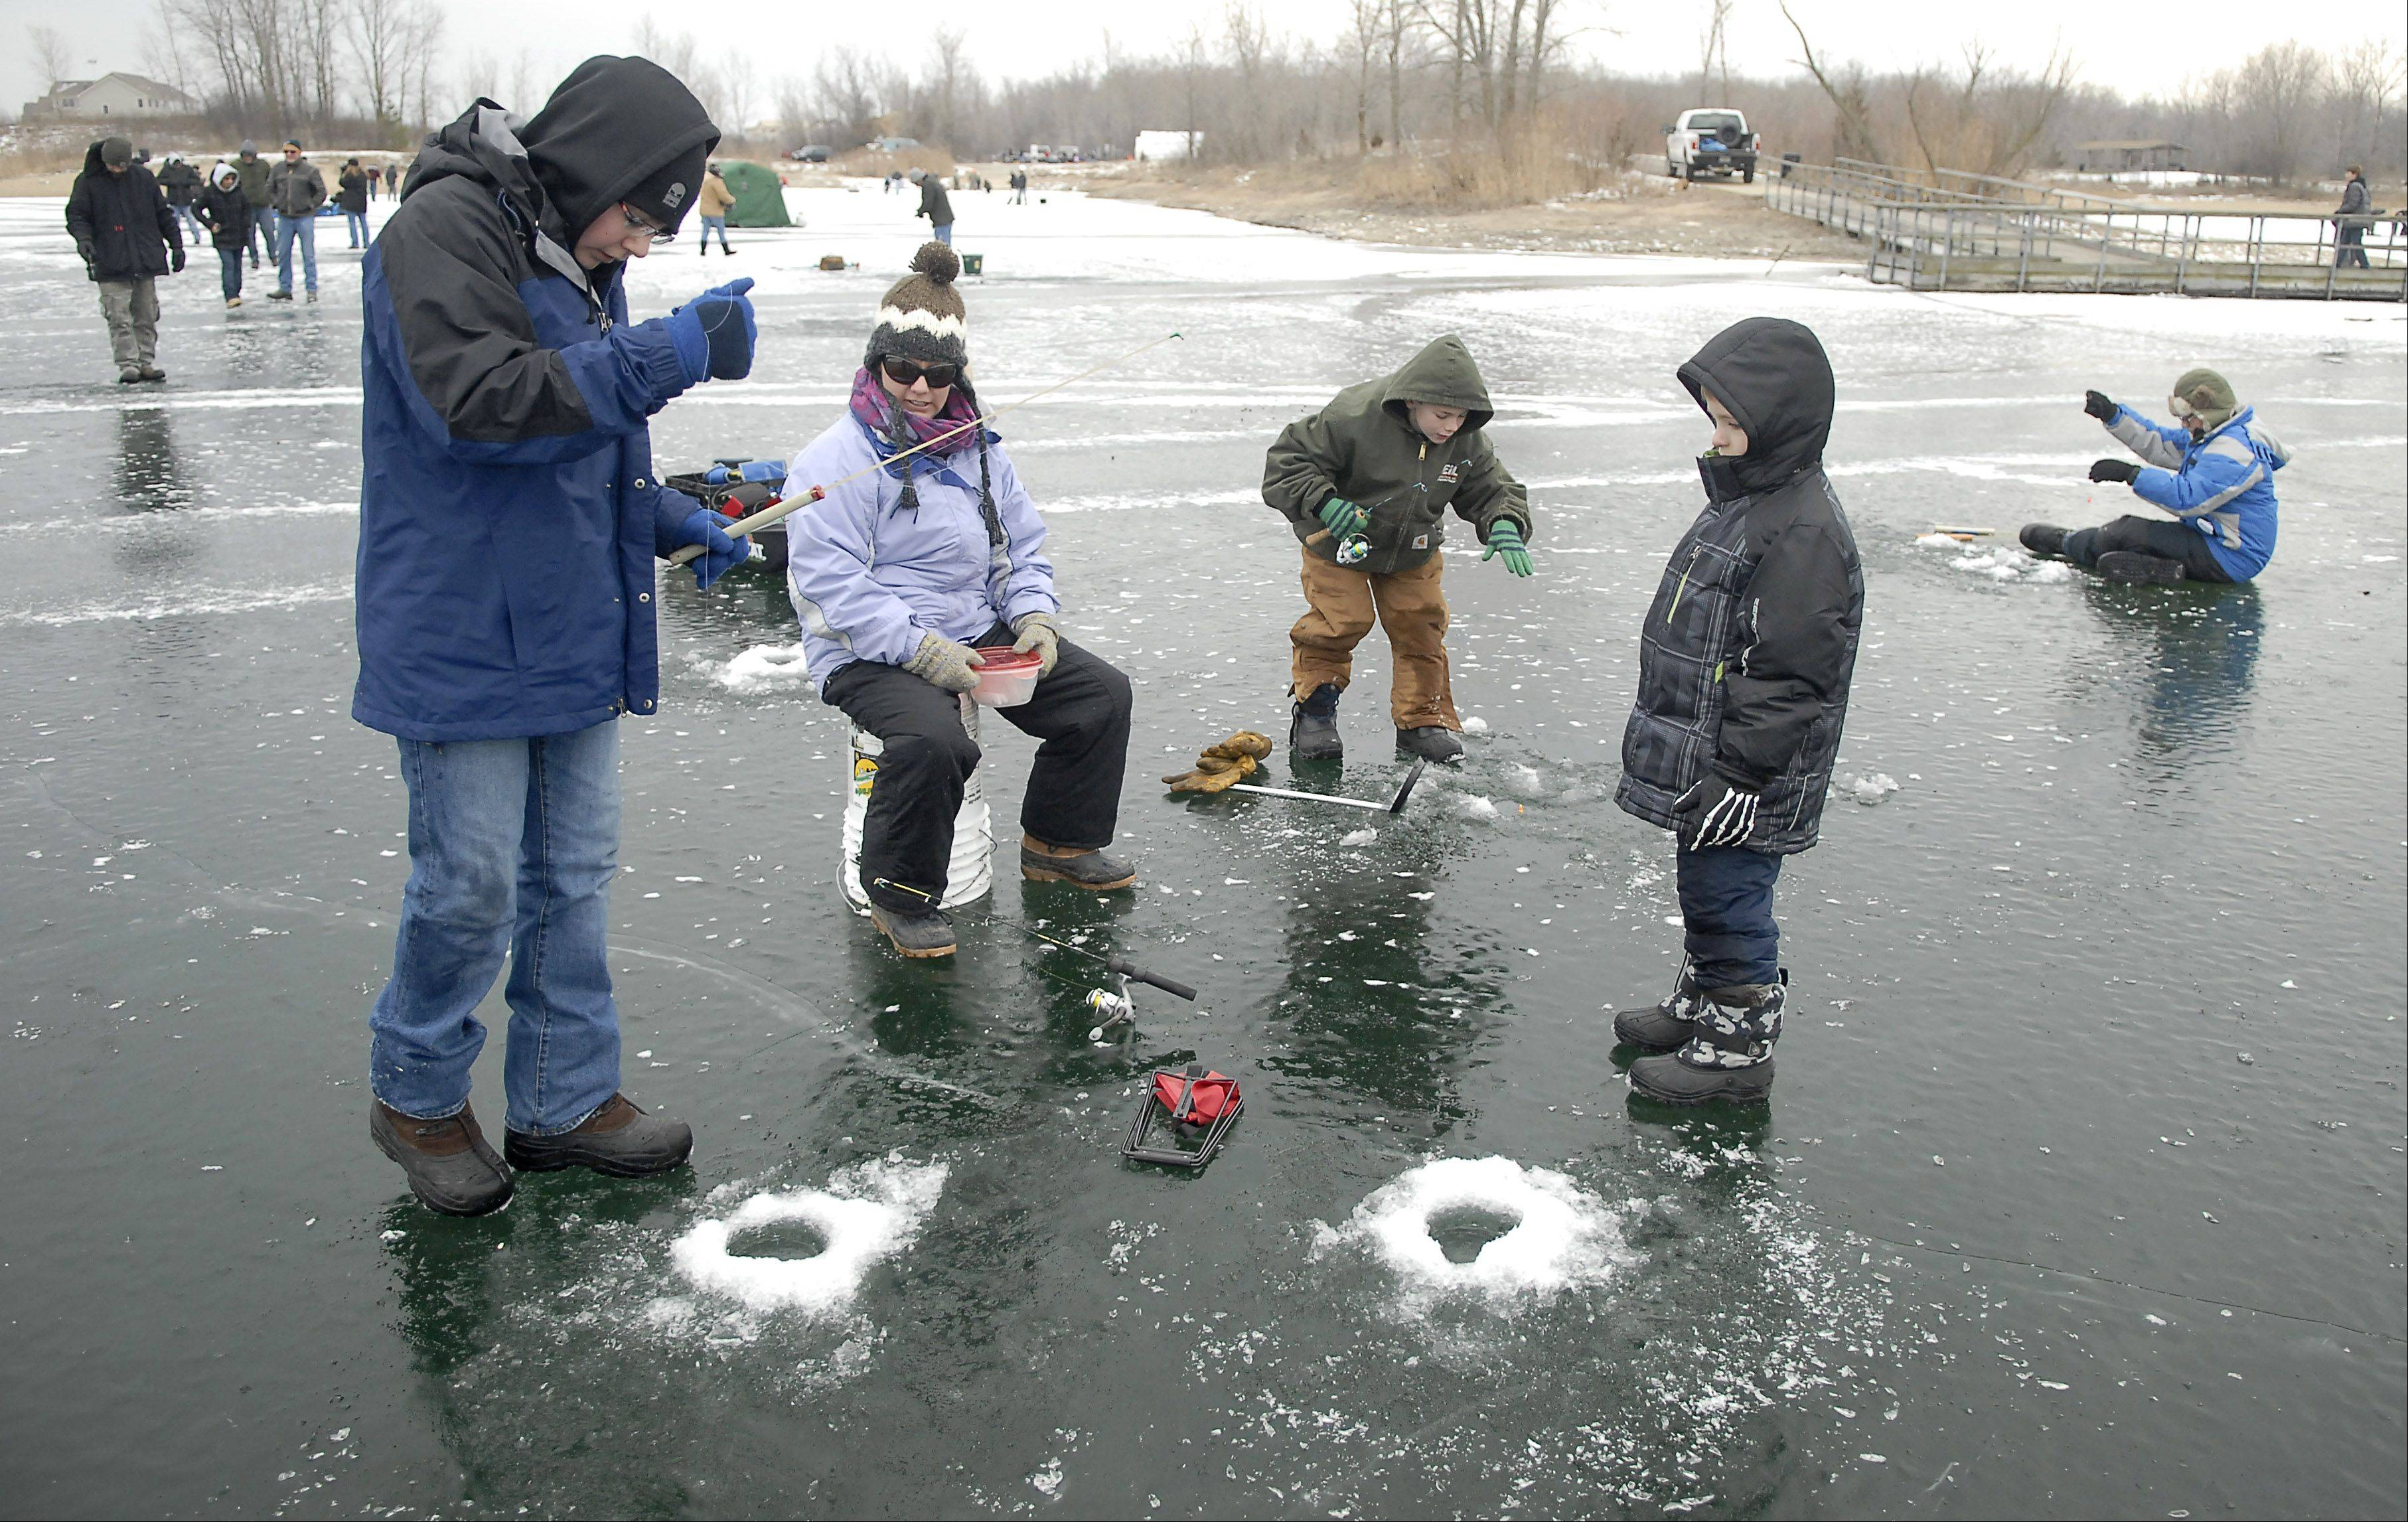 Thomas Gaudio, 15, of Lake in the Hills, left, lowers his line into a fresh hole near Kim Cederlund of Union and her sons, Tyler, 11, center, and 8-year-old Will during Saturday's Frost Fishing Fair in Cary. The event was organized by the McHenry Conservation District.